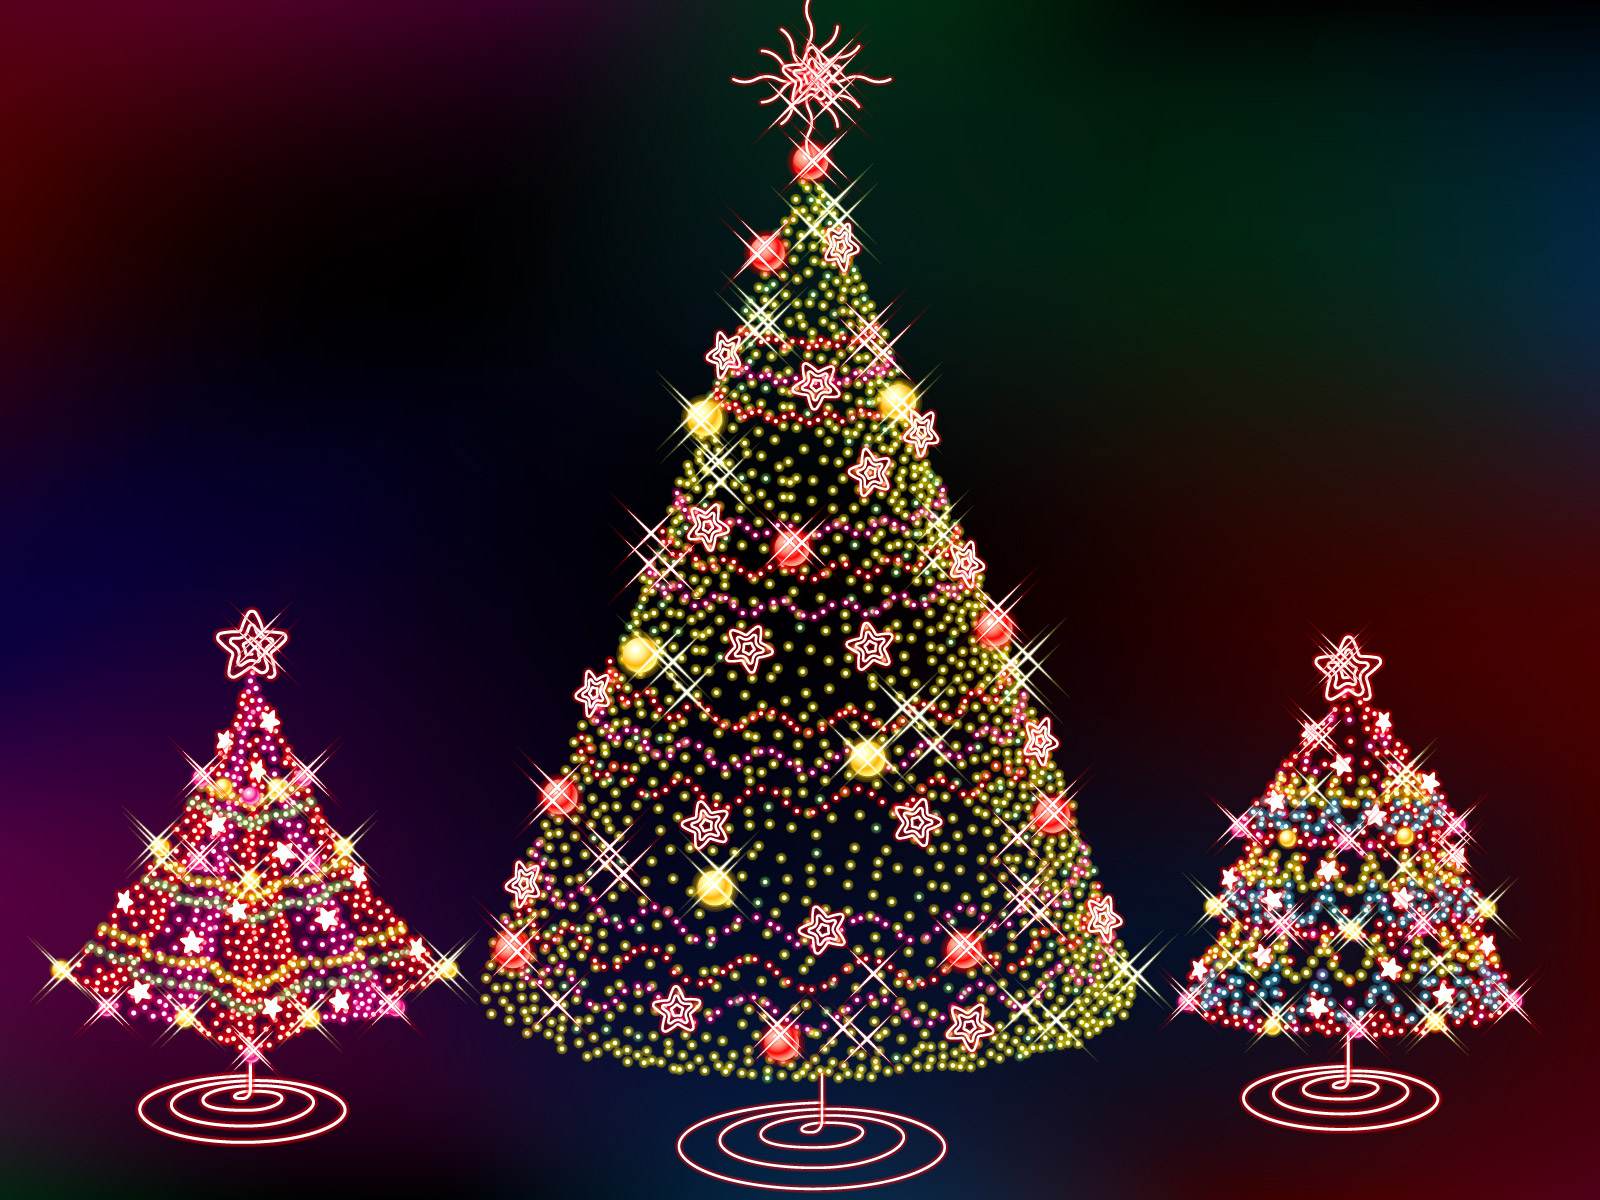 Christmas Lights Wallpaper : Best Desktop HD Wallpaper - Christmas lights wallpapers